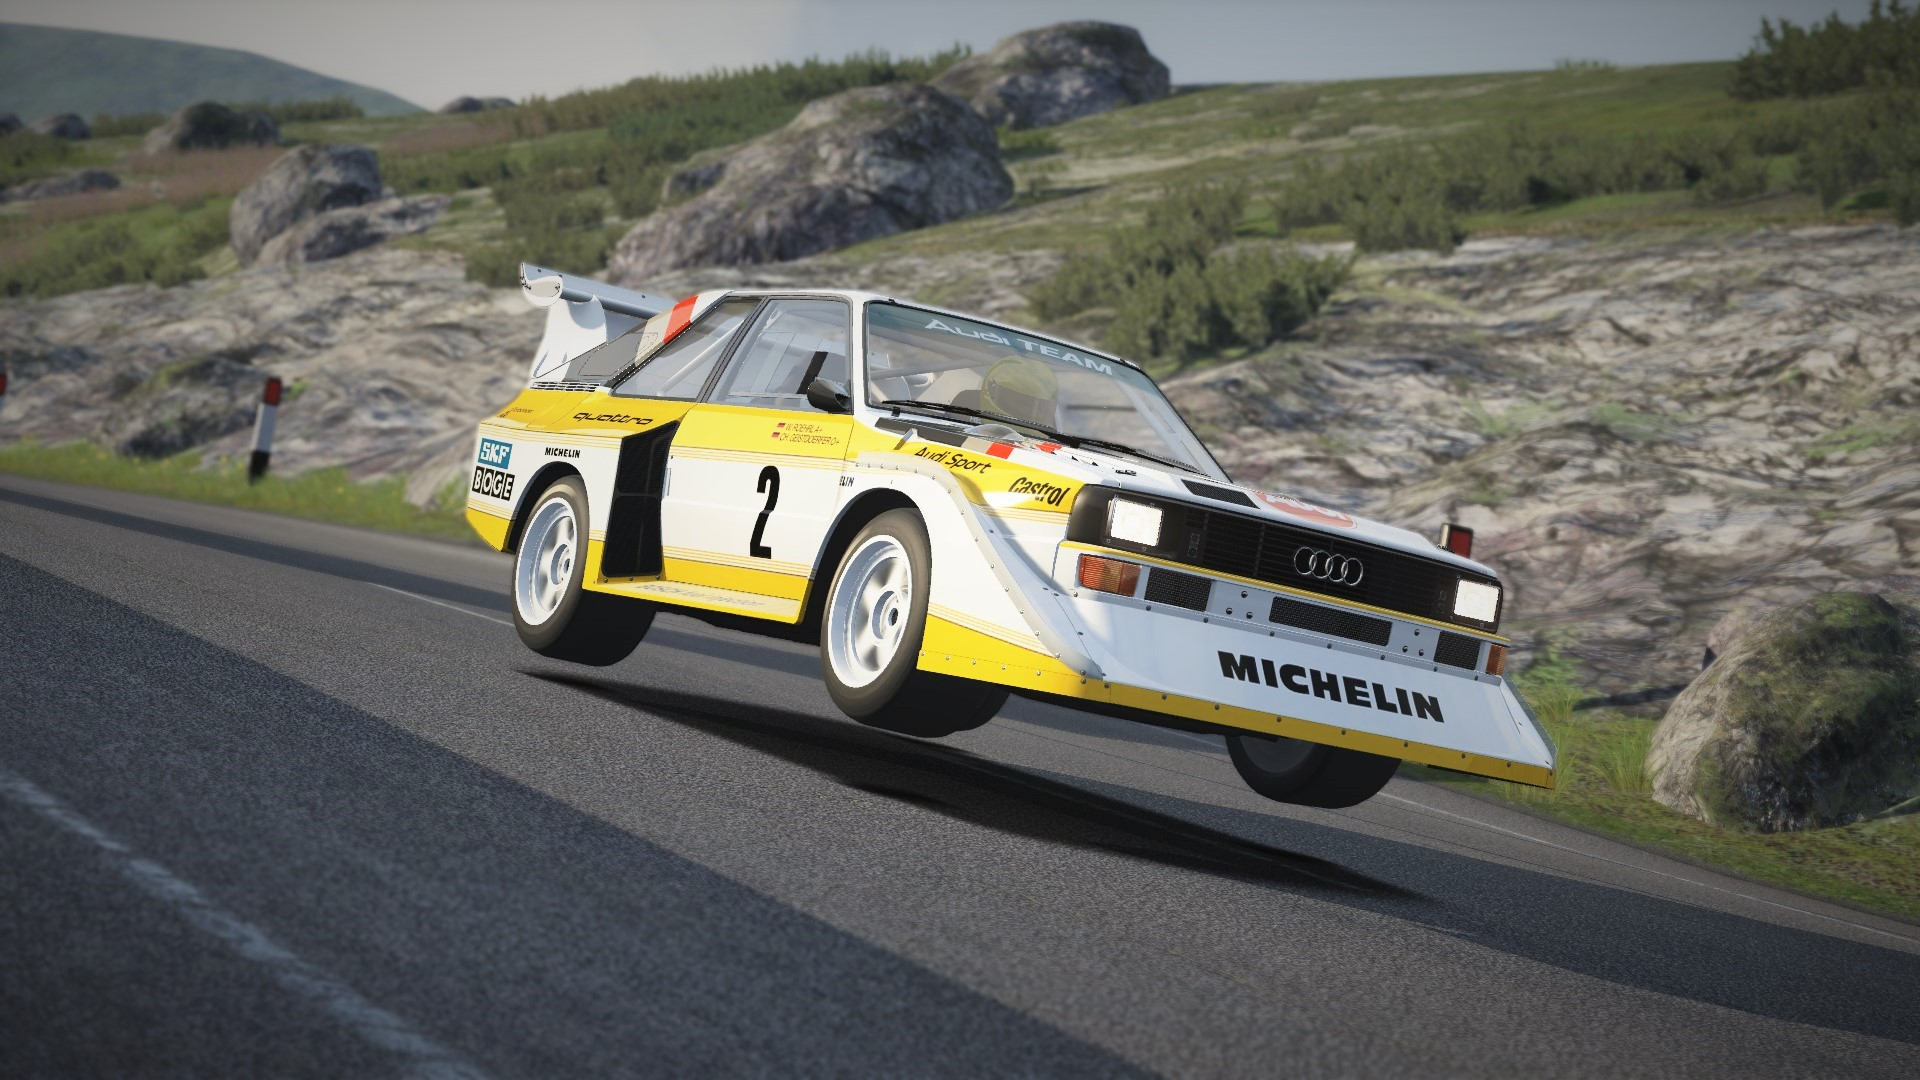 Screenshot_ks_audi_sport_quattro_rally_ks_highlands_17-2-117-21-16-5.jpg